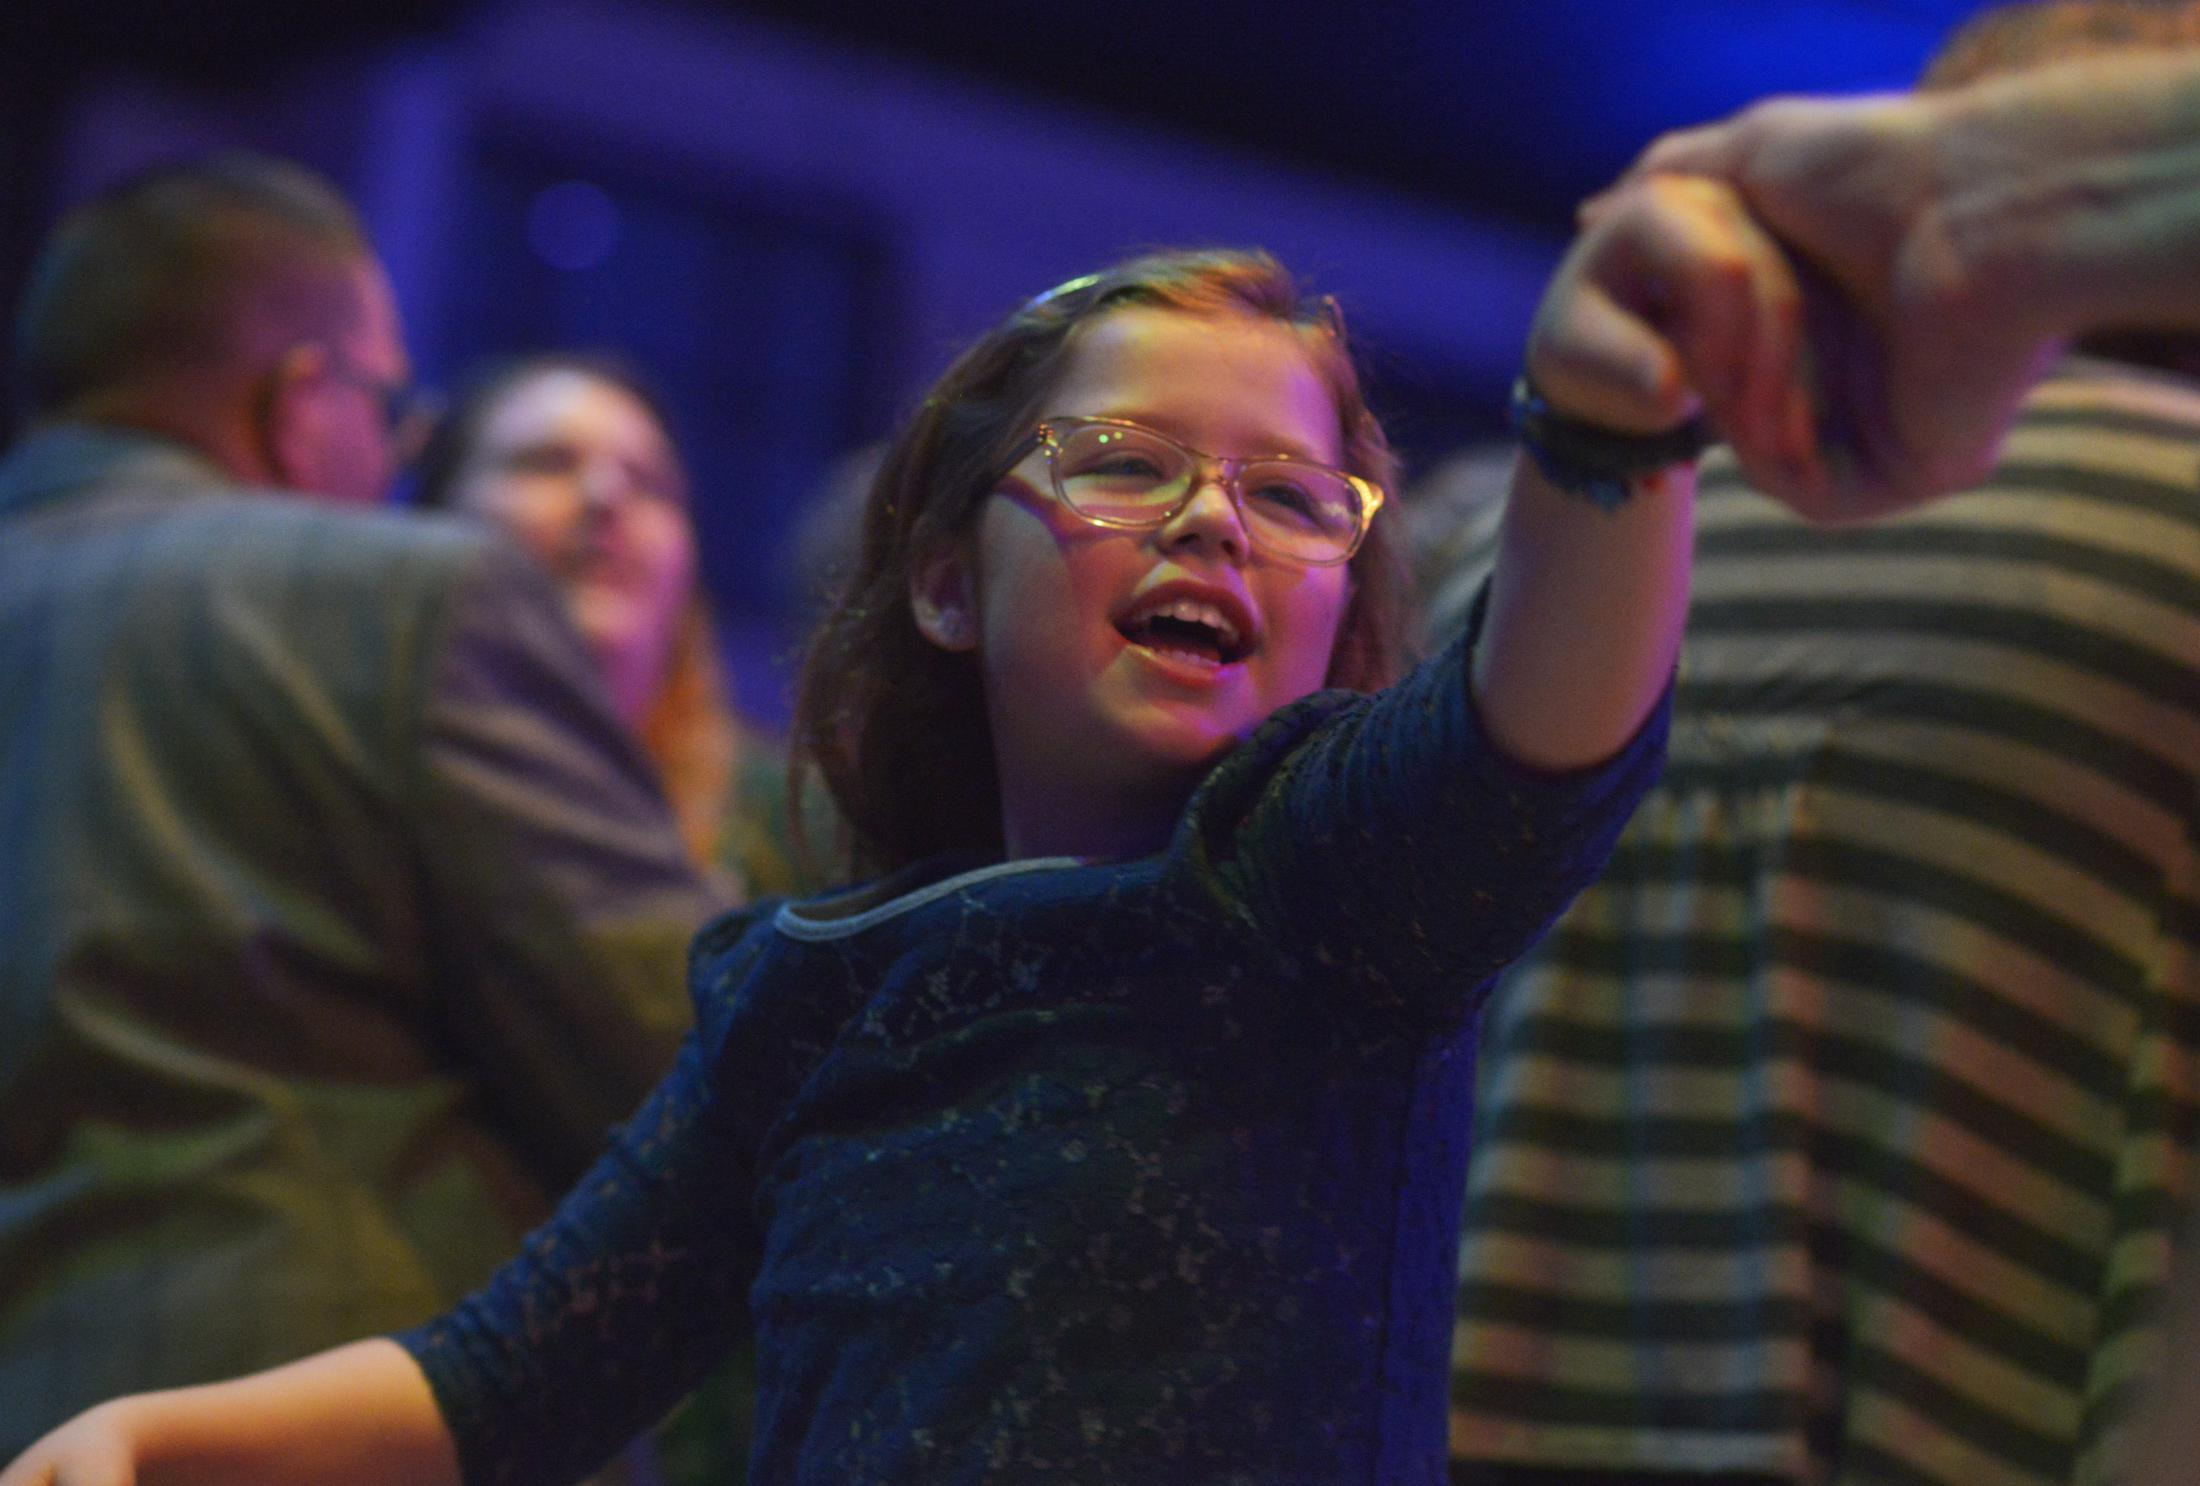 """Molly Wampler dances with her father Ryan Wampler on Friday, Feb. 7, 2020, at the Night To Shine dance at The Crossing in Columbia. Molly belted the hit Frozen song """"Let It Go"""" as her father spun her around the dance floor."""